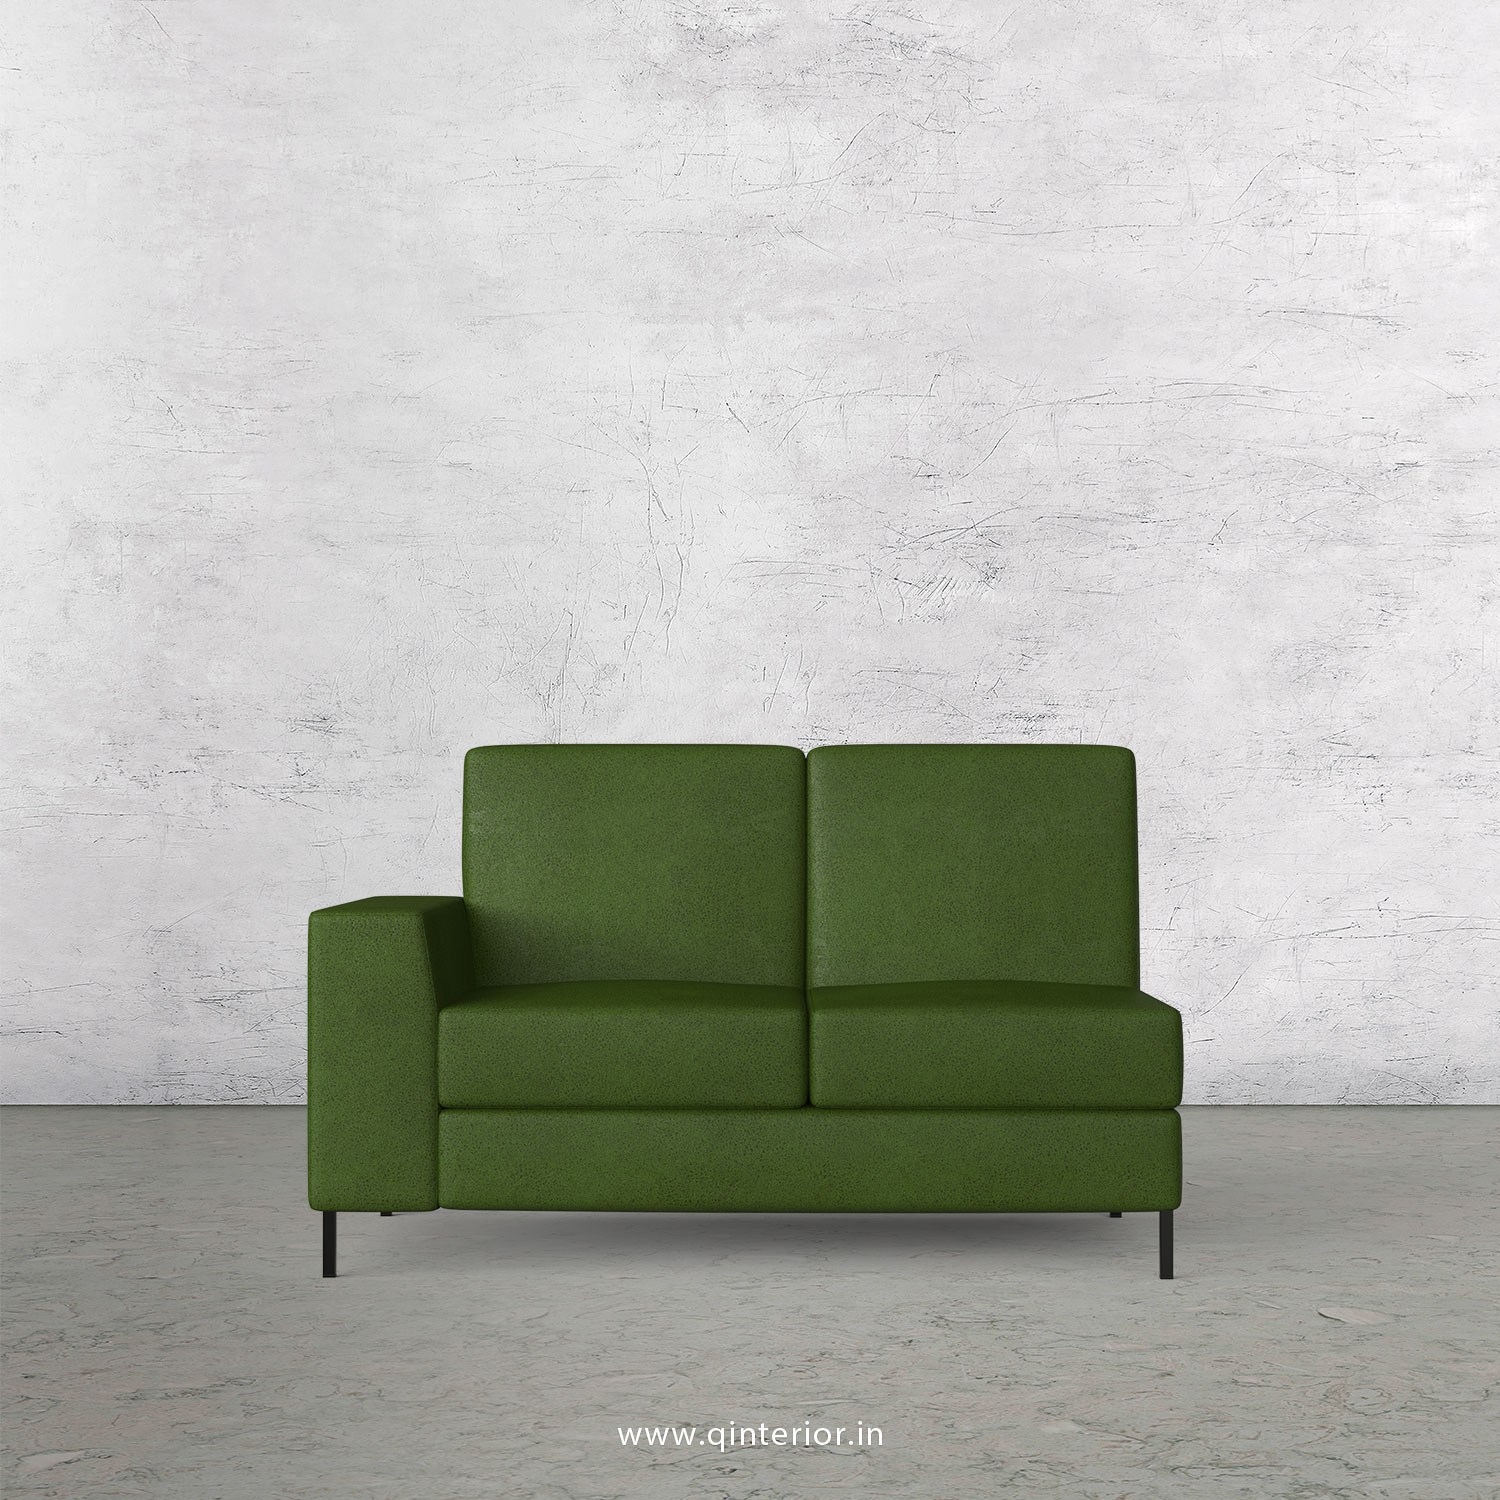 Viva 2 Seater Modular Sofa in Fab Leather Fabric - MSFA002 FL04